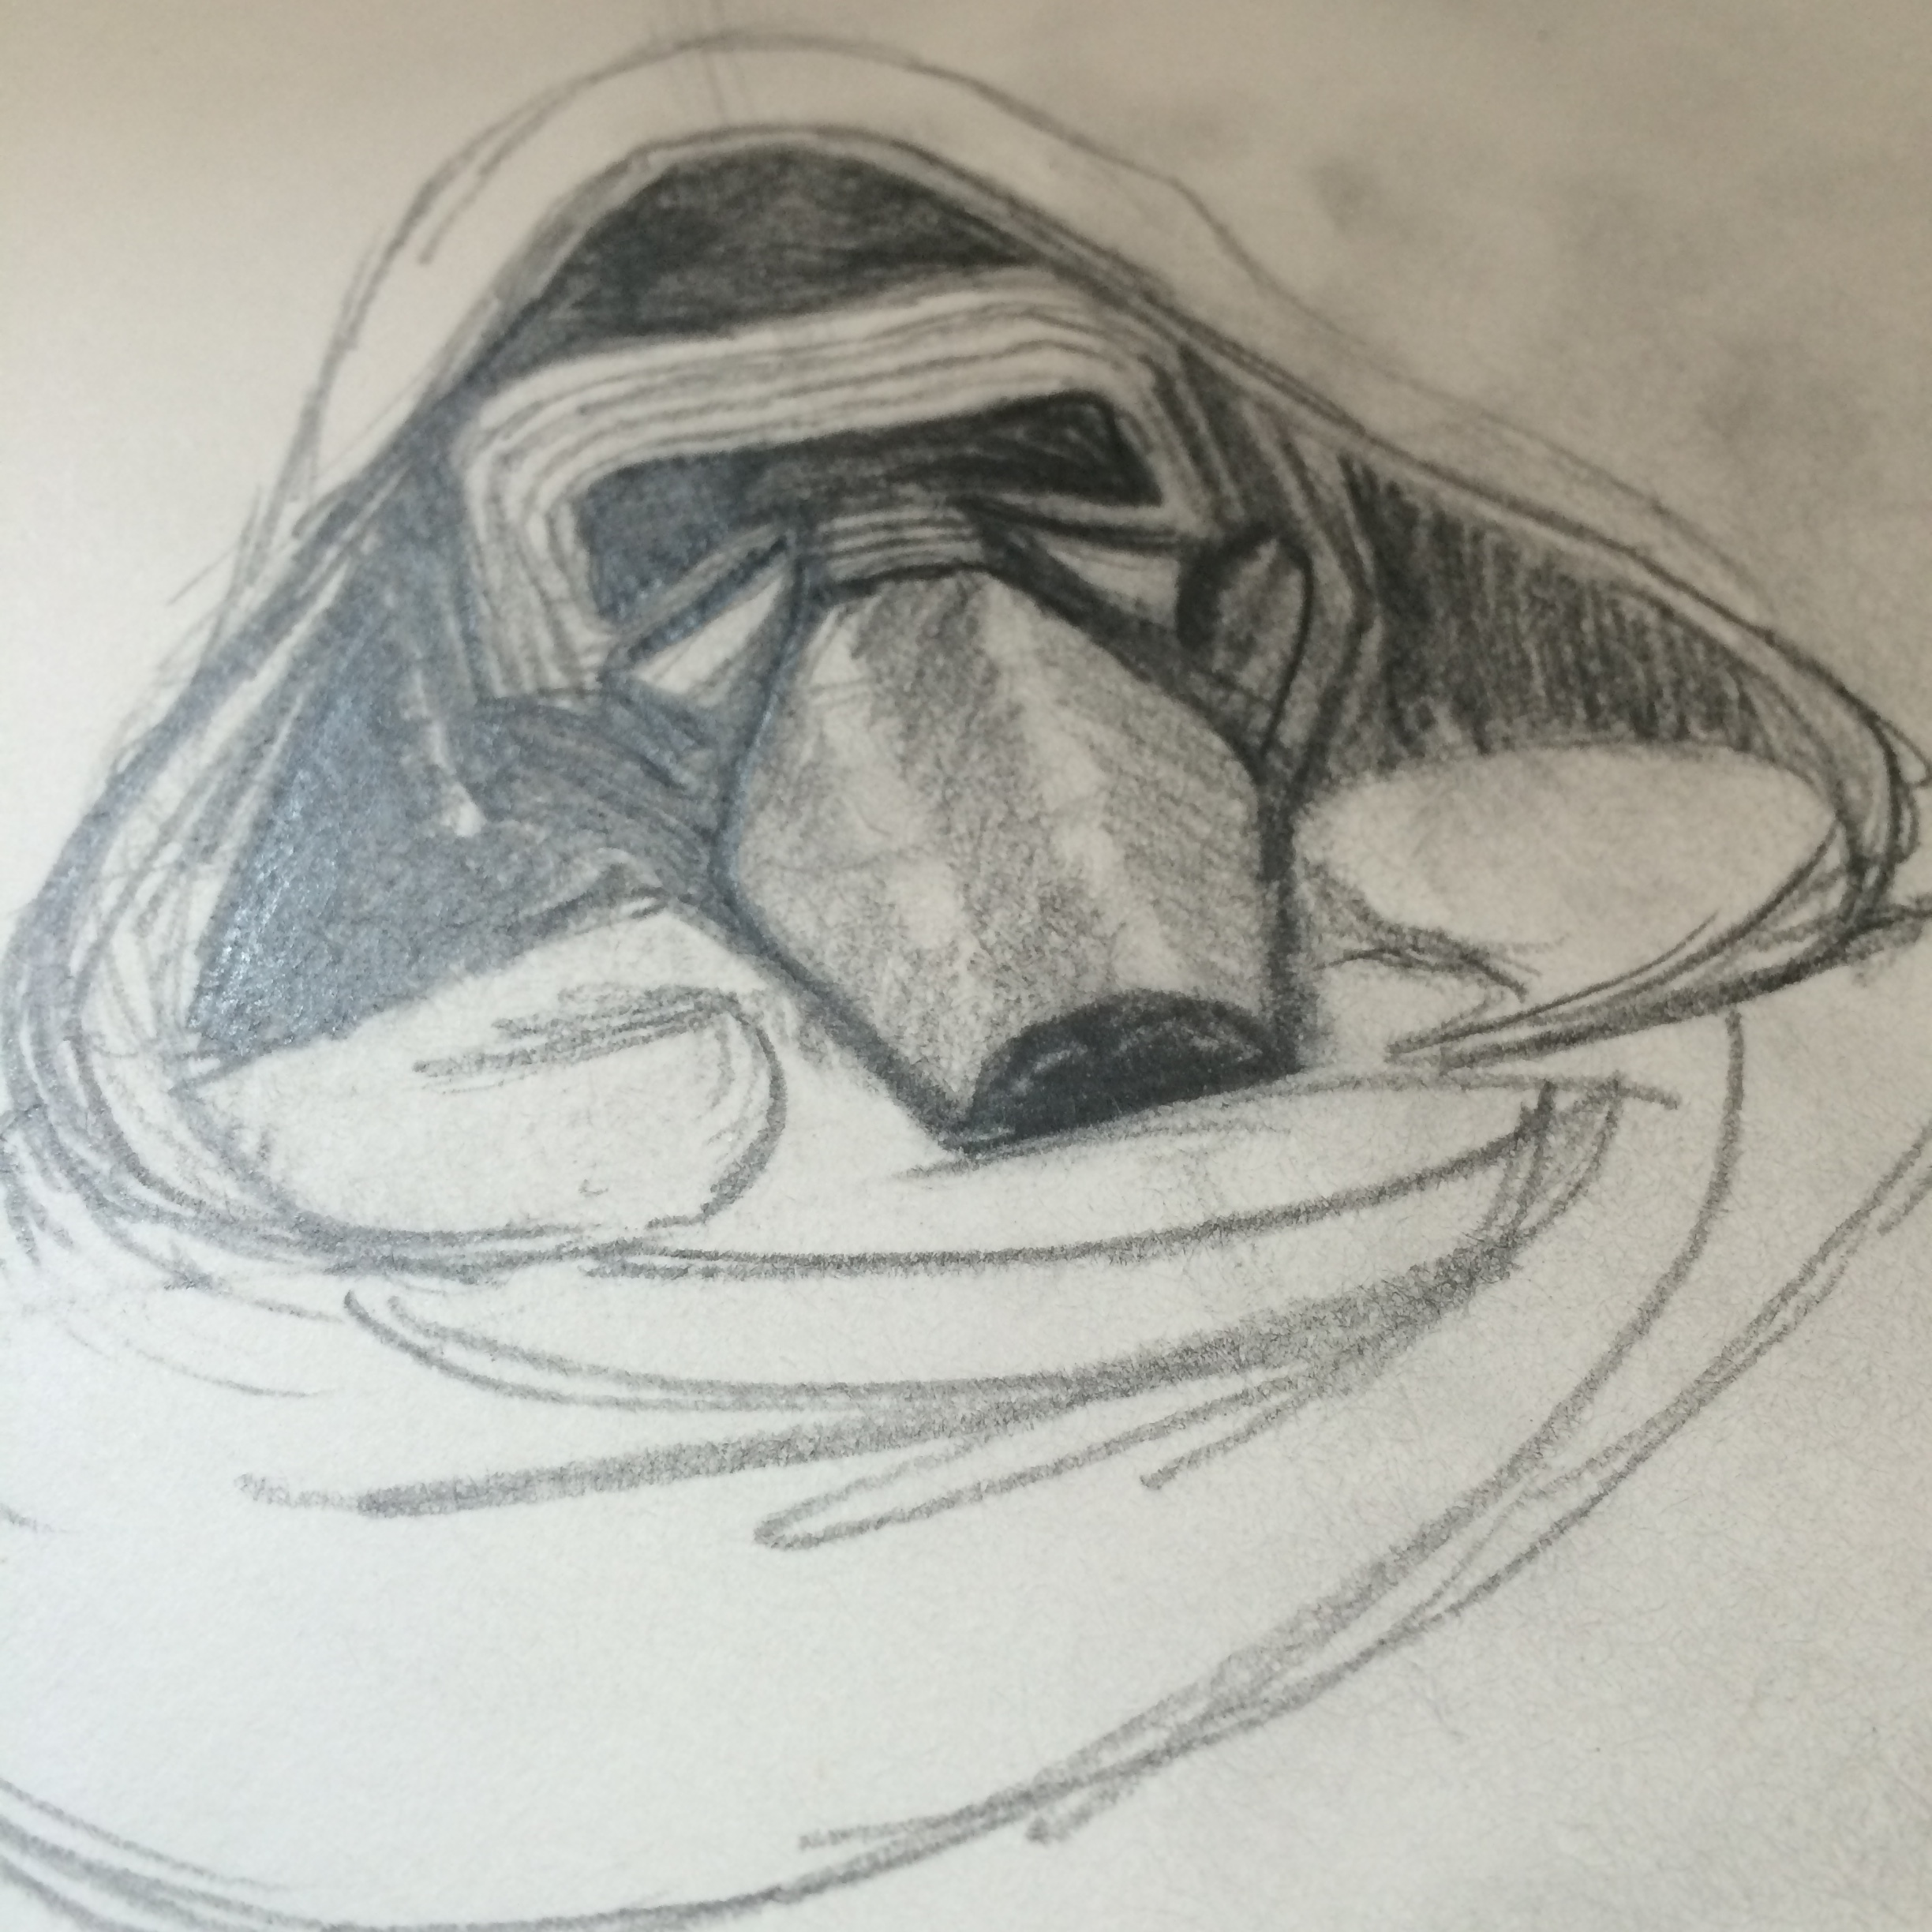 Kylo Ren Sketch Drawing by Jlane Design